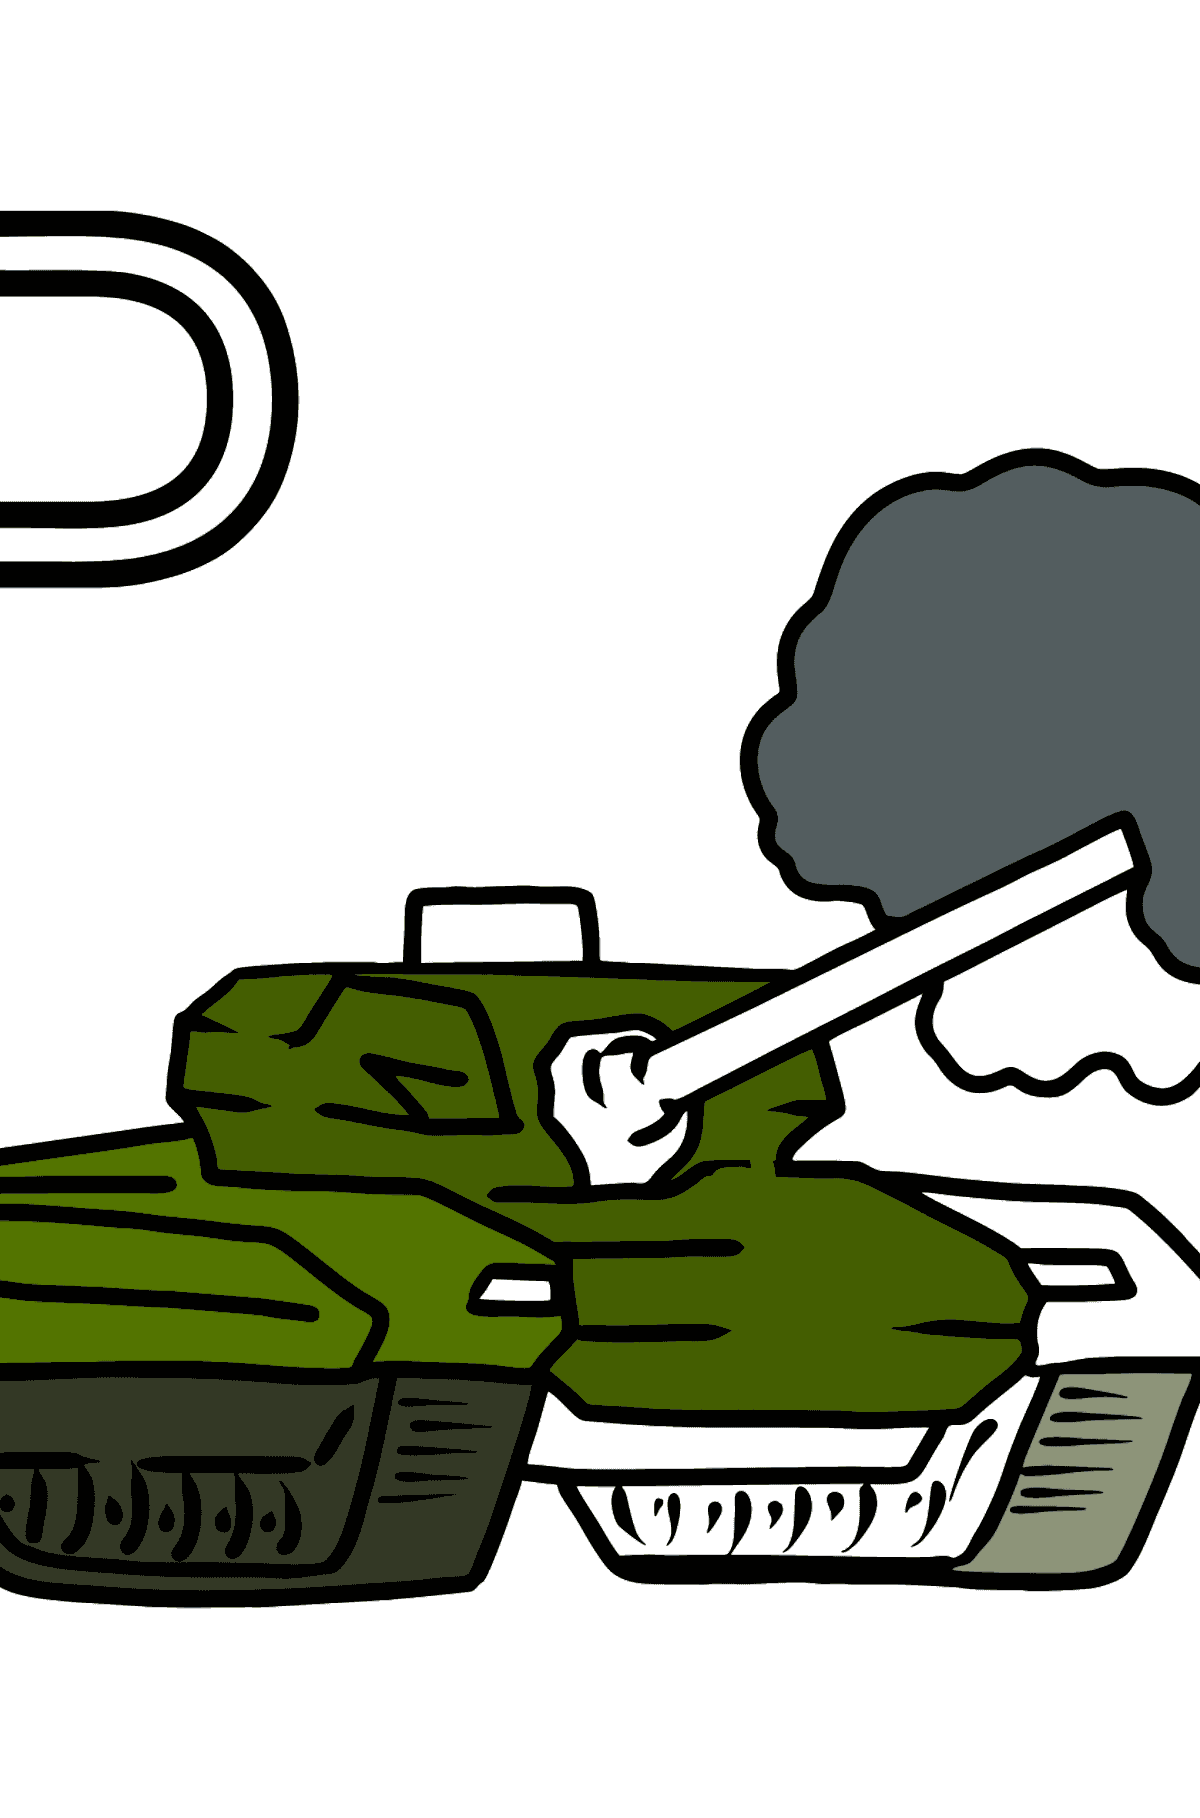 German Letter P coloring pages - PANZER - Coloring Pages for Kids